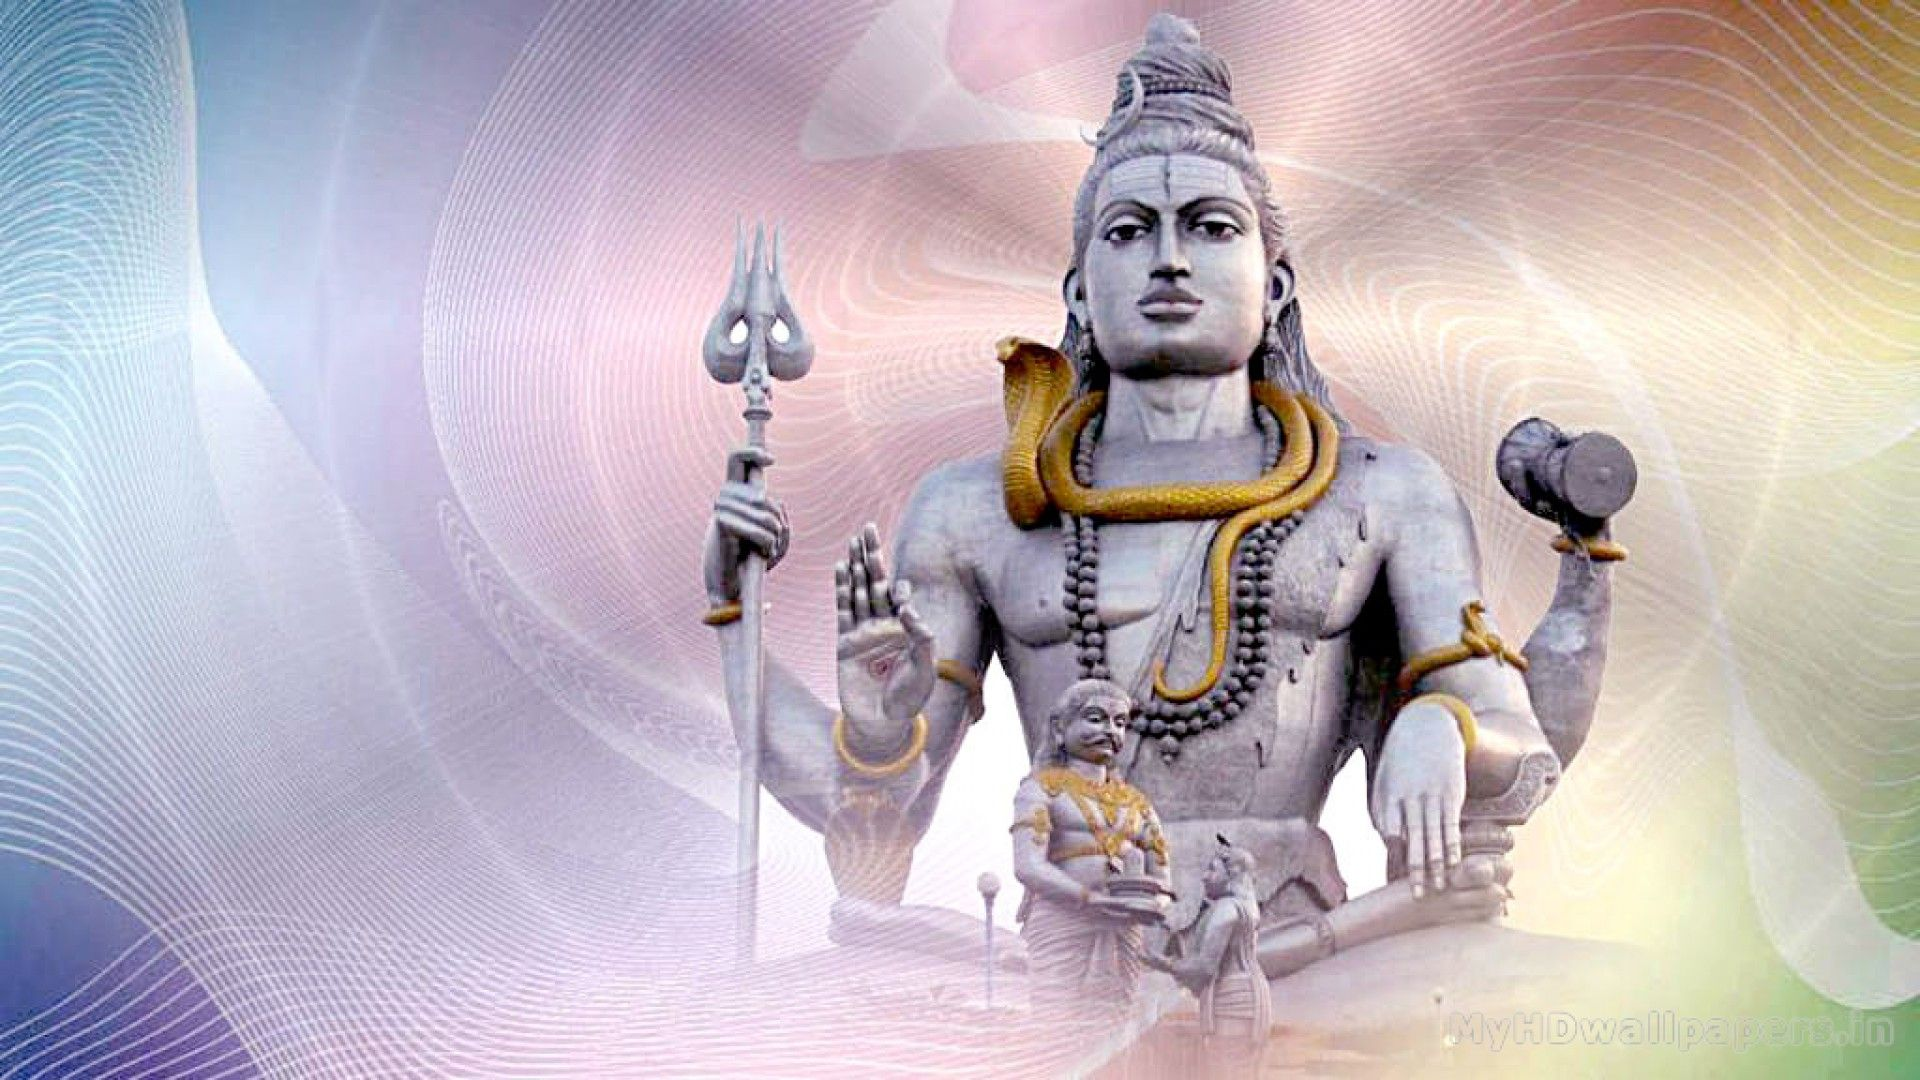 Hd wallpaper lord shiva - Click Here To Download In Hd Format Lord Shiva Hd Wallpaper Widescreen Http